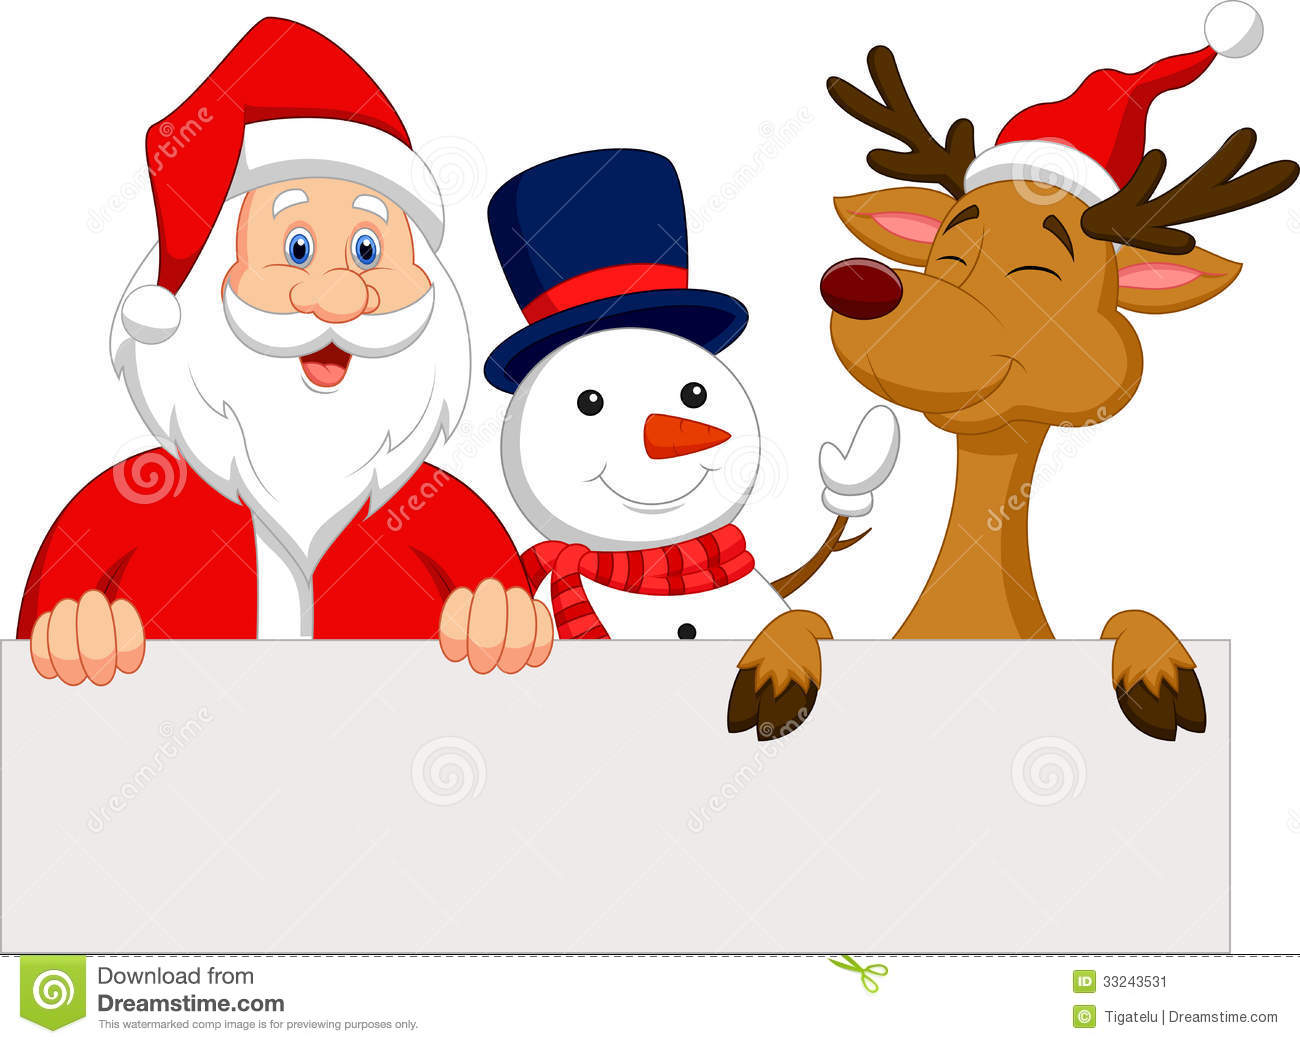 Cartoon Pictures of Santa Claus And His Reindeer images